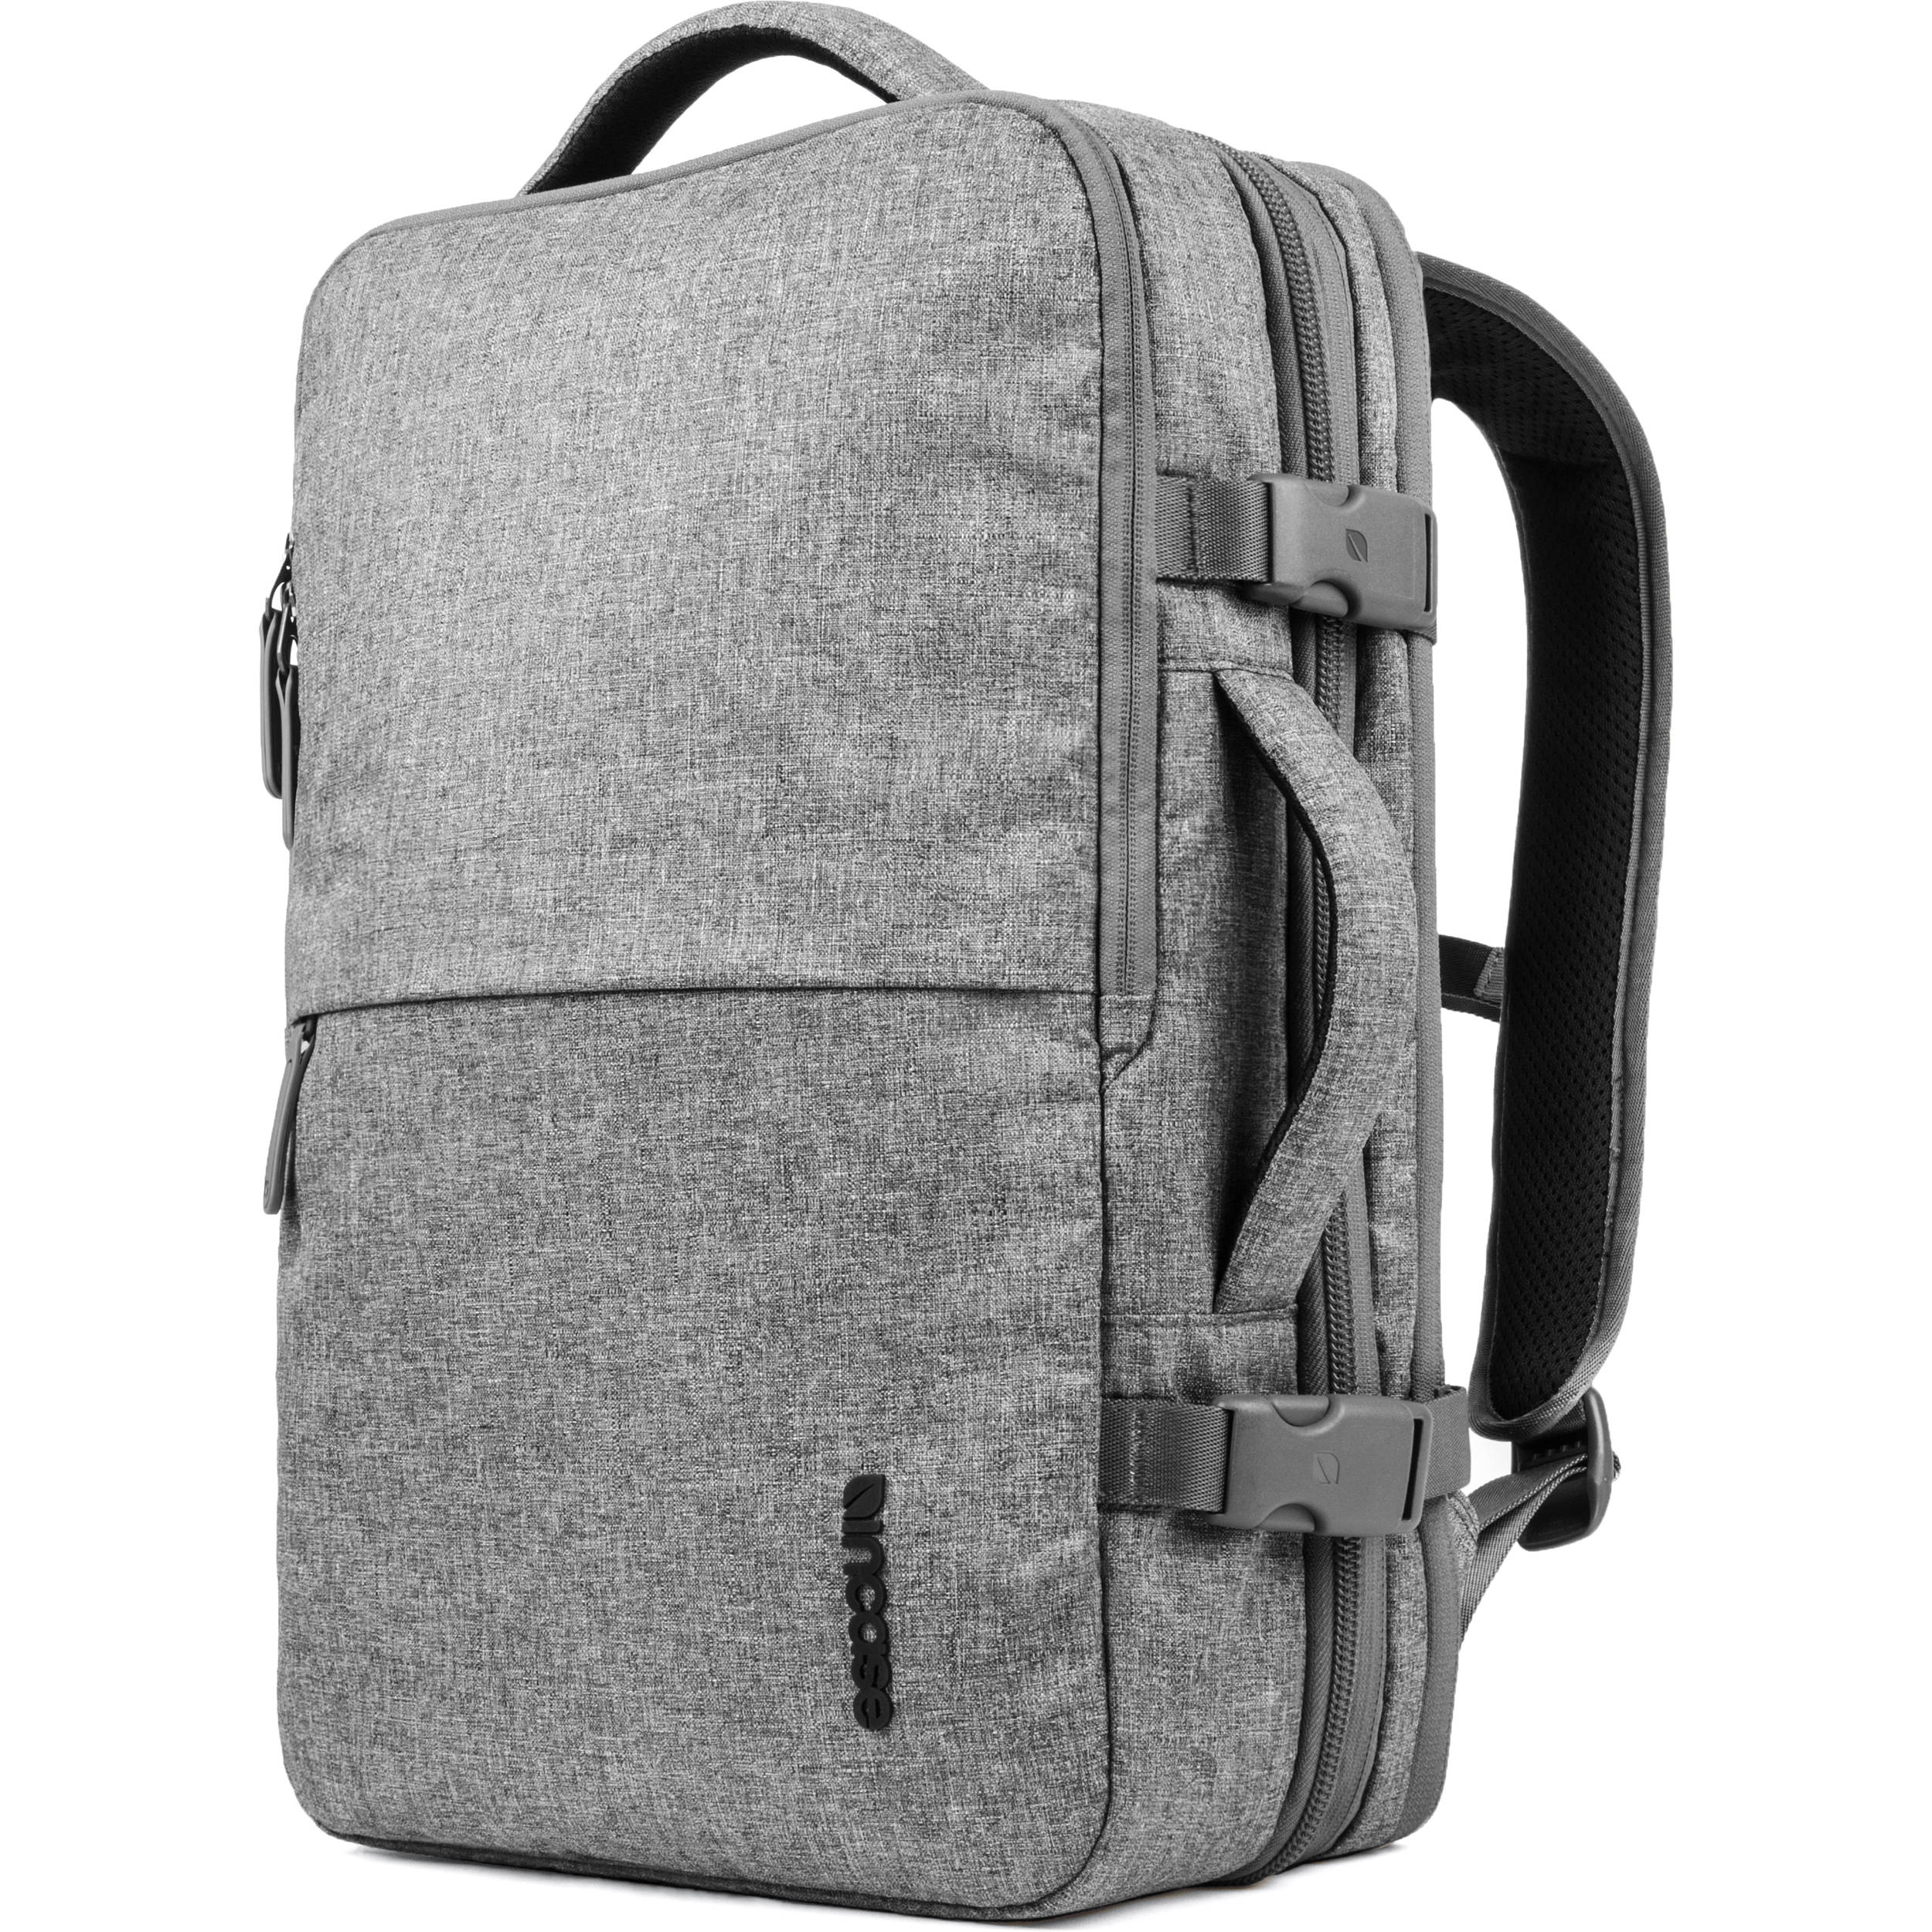 Best Day Pack For Traveling